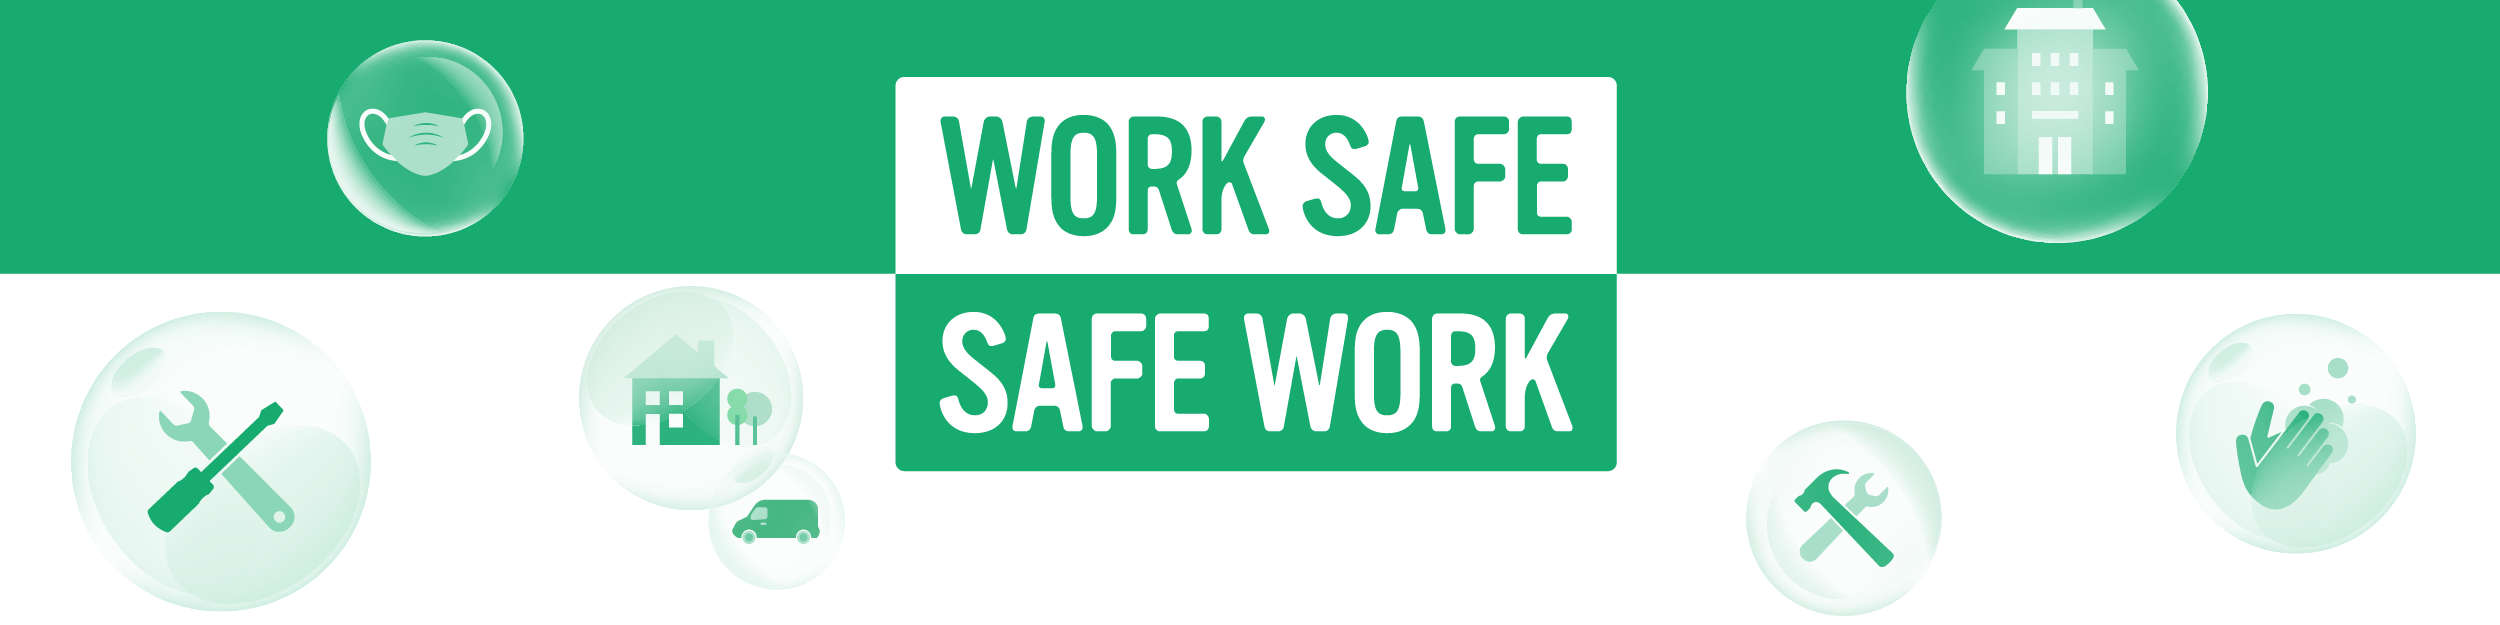 Work Safe Safe Work - Working together to ensure work is carried out safely in your home